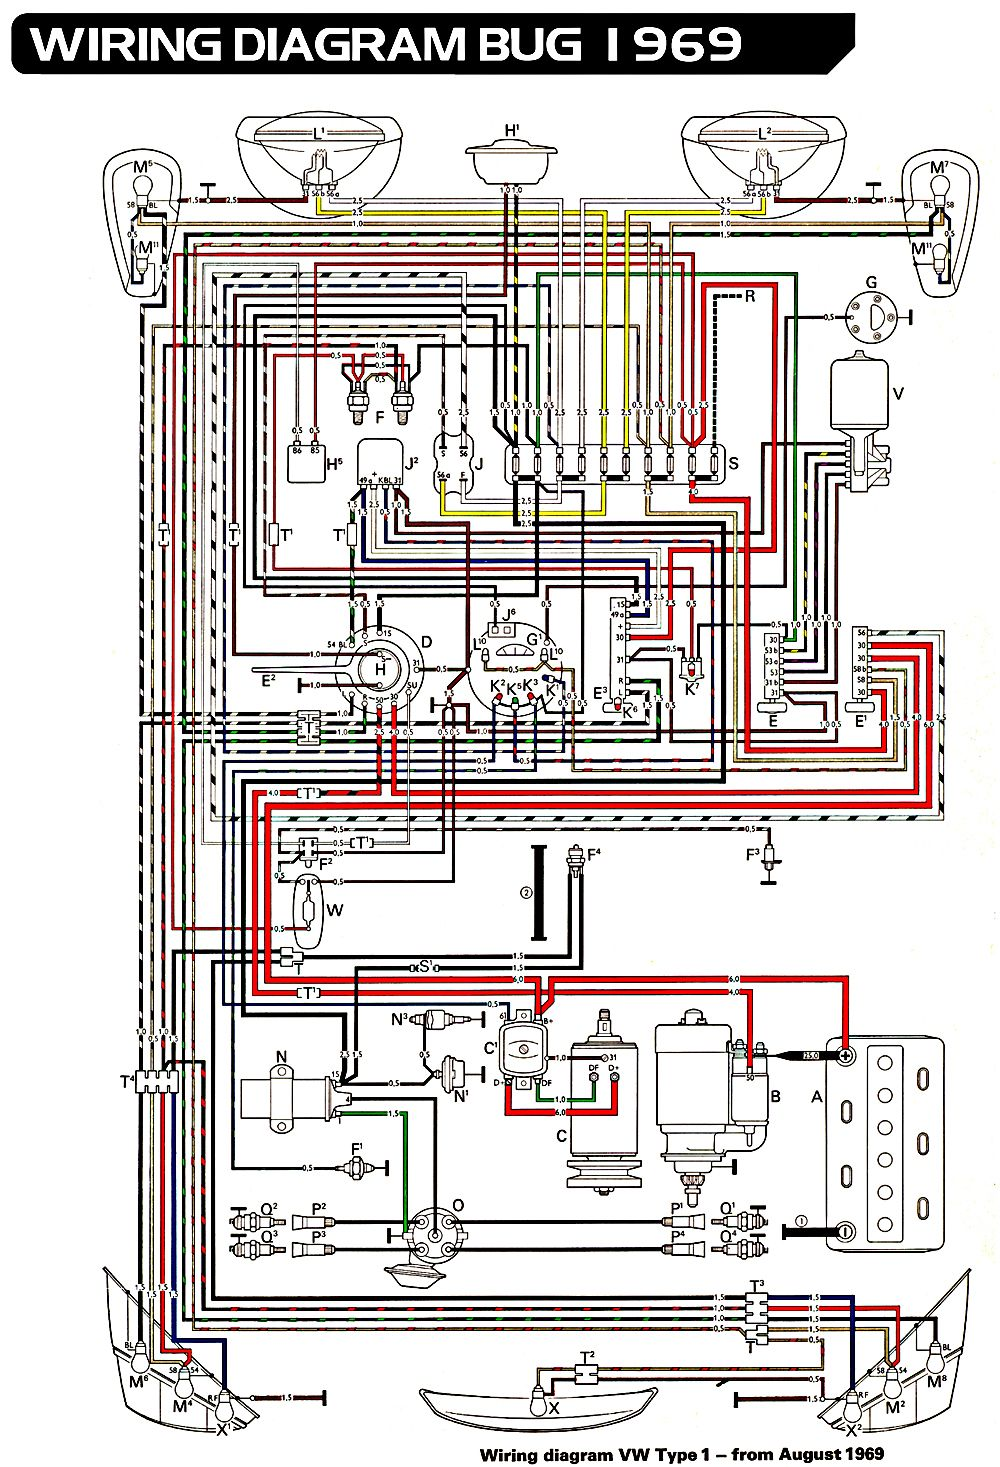 6d75c15875479254f26a32a8499d9044 volkswagen beetle wiring diagram 1966 vw beetle wiring vw bug wiring diagram at arjmand.co